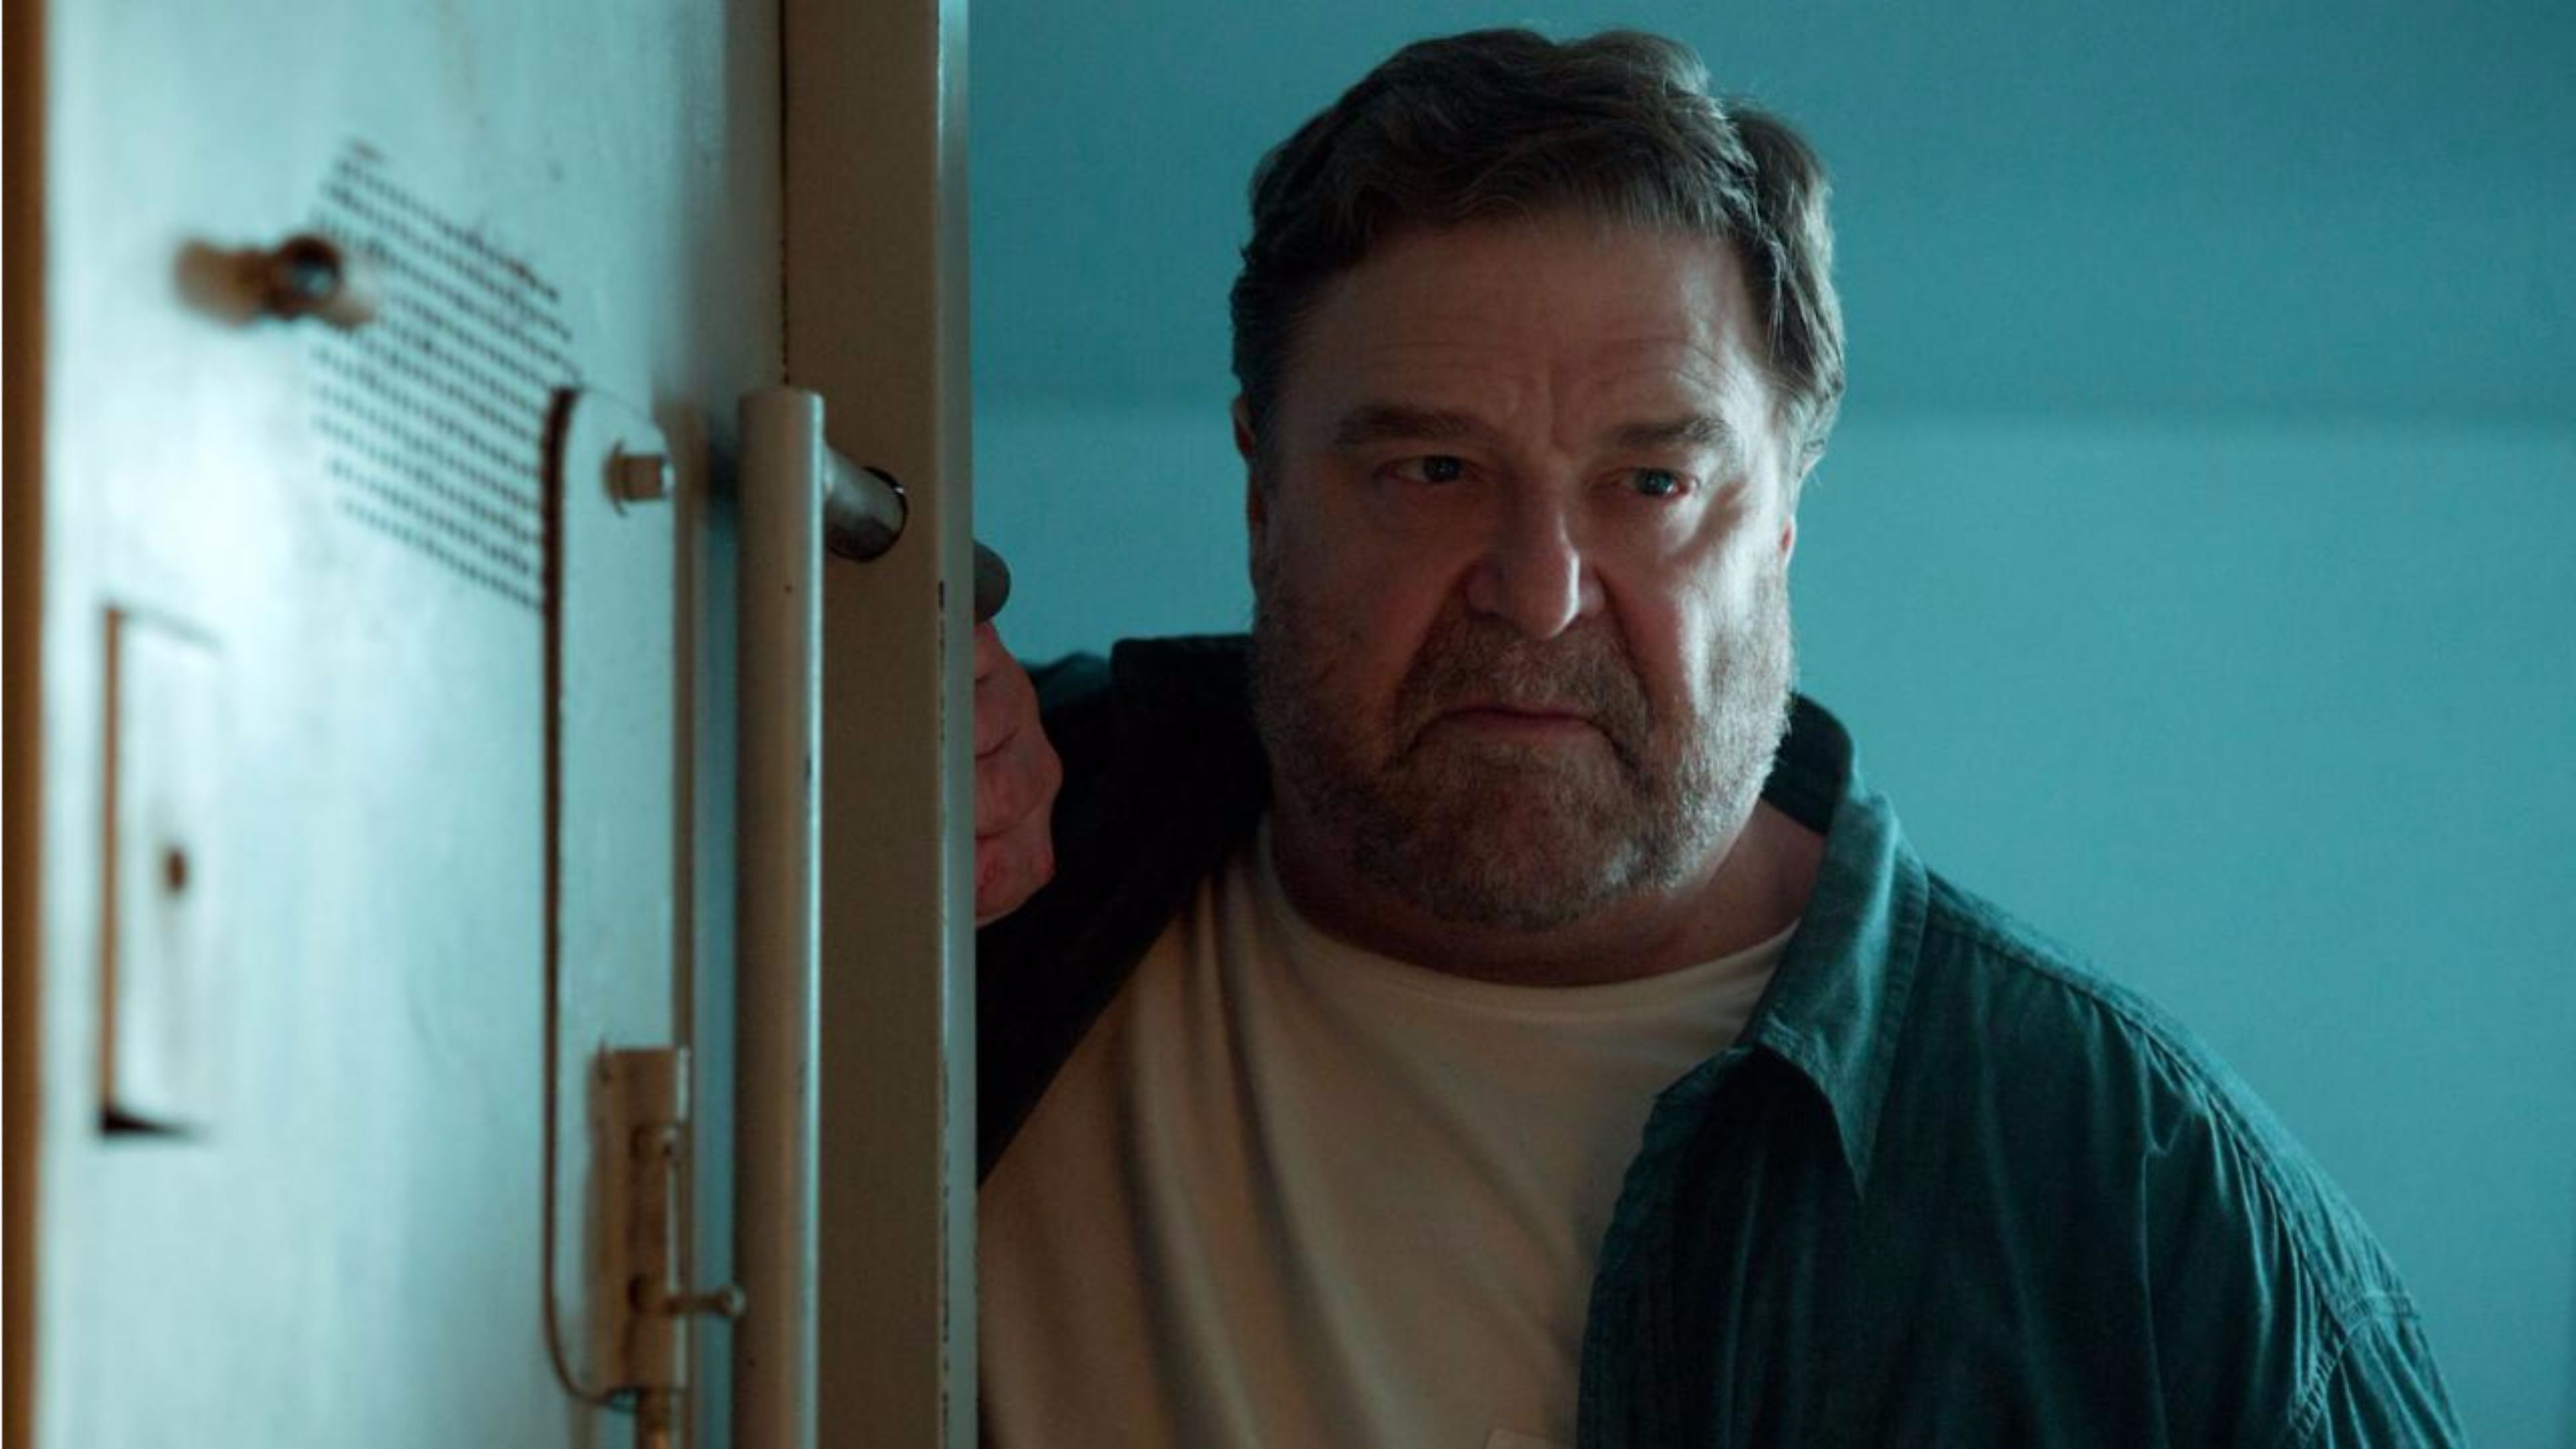 John Goodman Cloverfield Lane S wallpaper